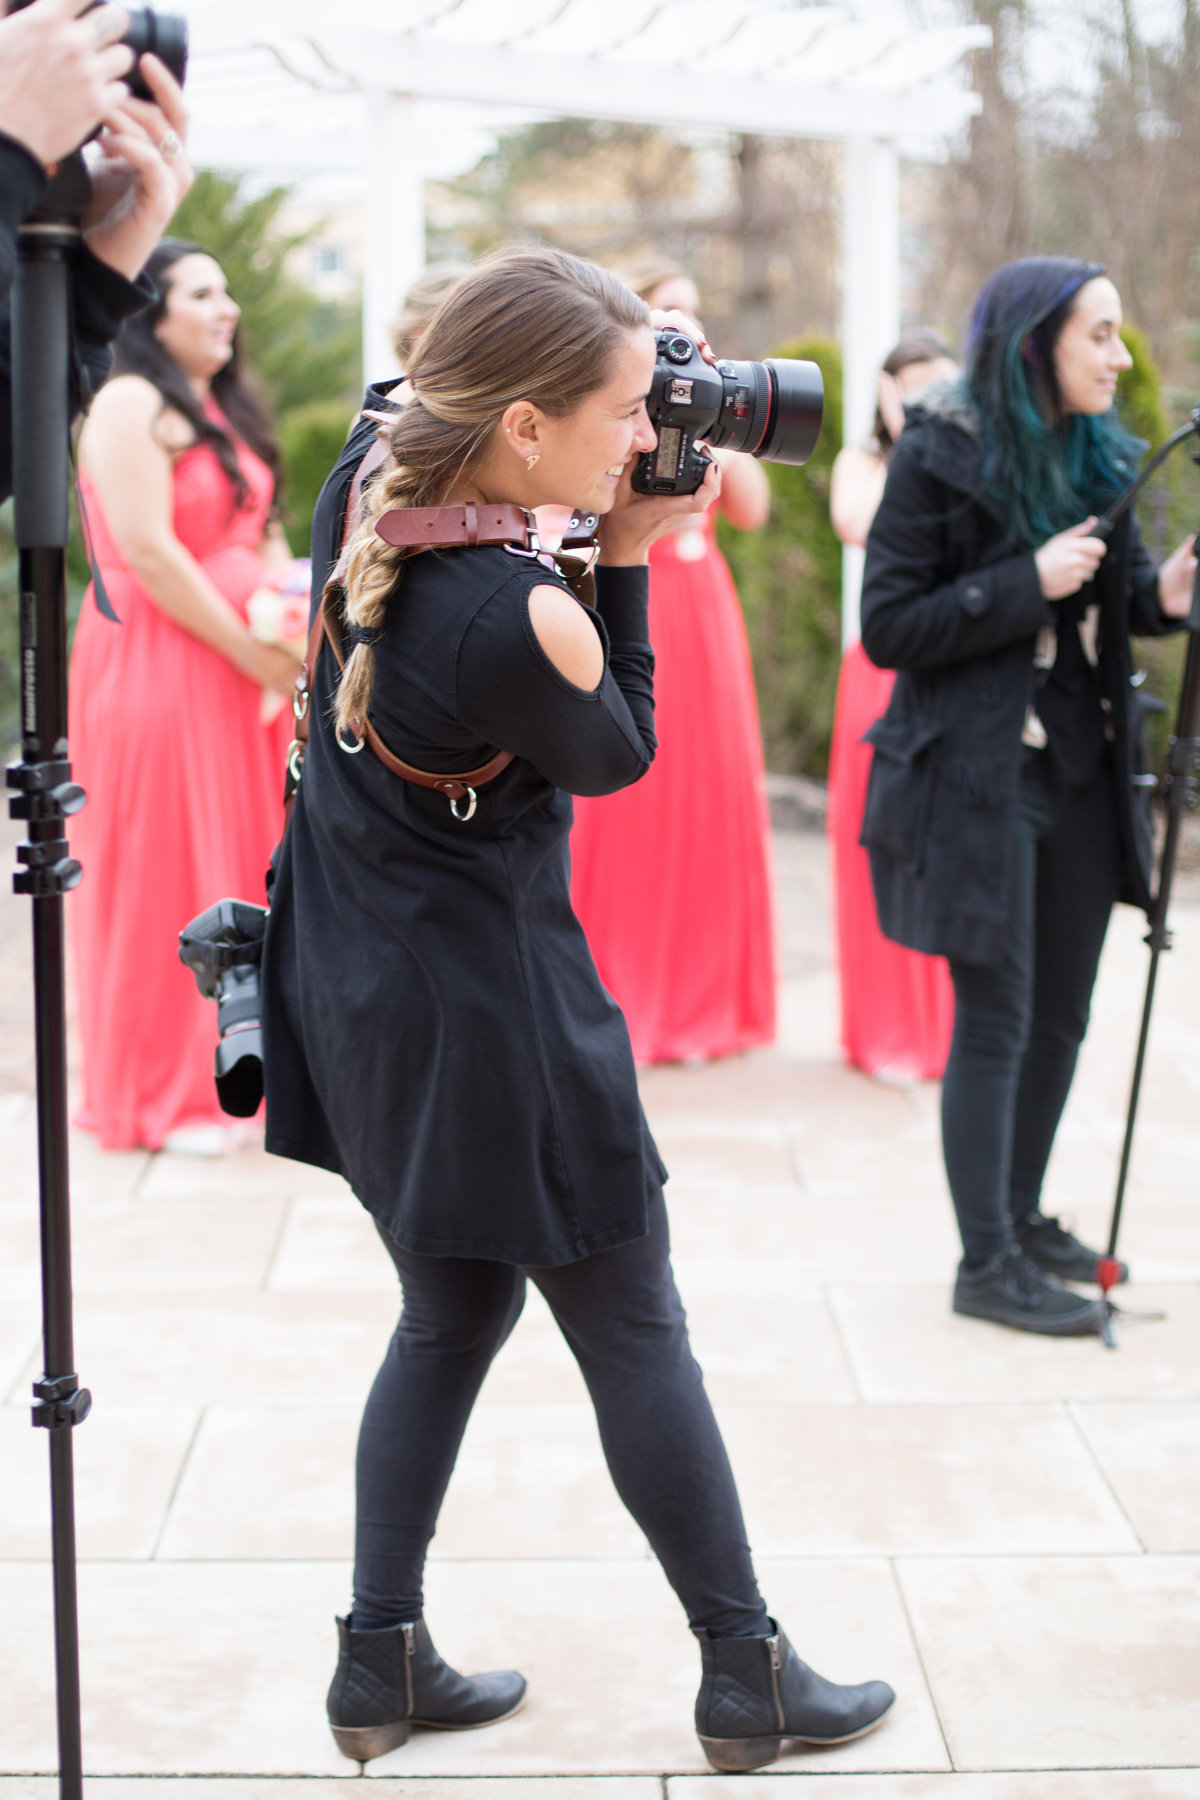 Ashley Mac Photographs - New Jersey Weddings - Behind the Scenes of a Wedding - C24A0101